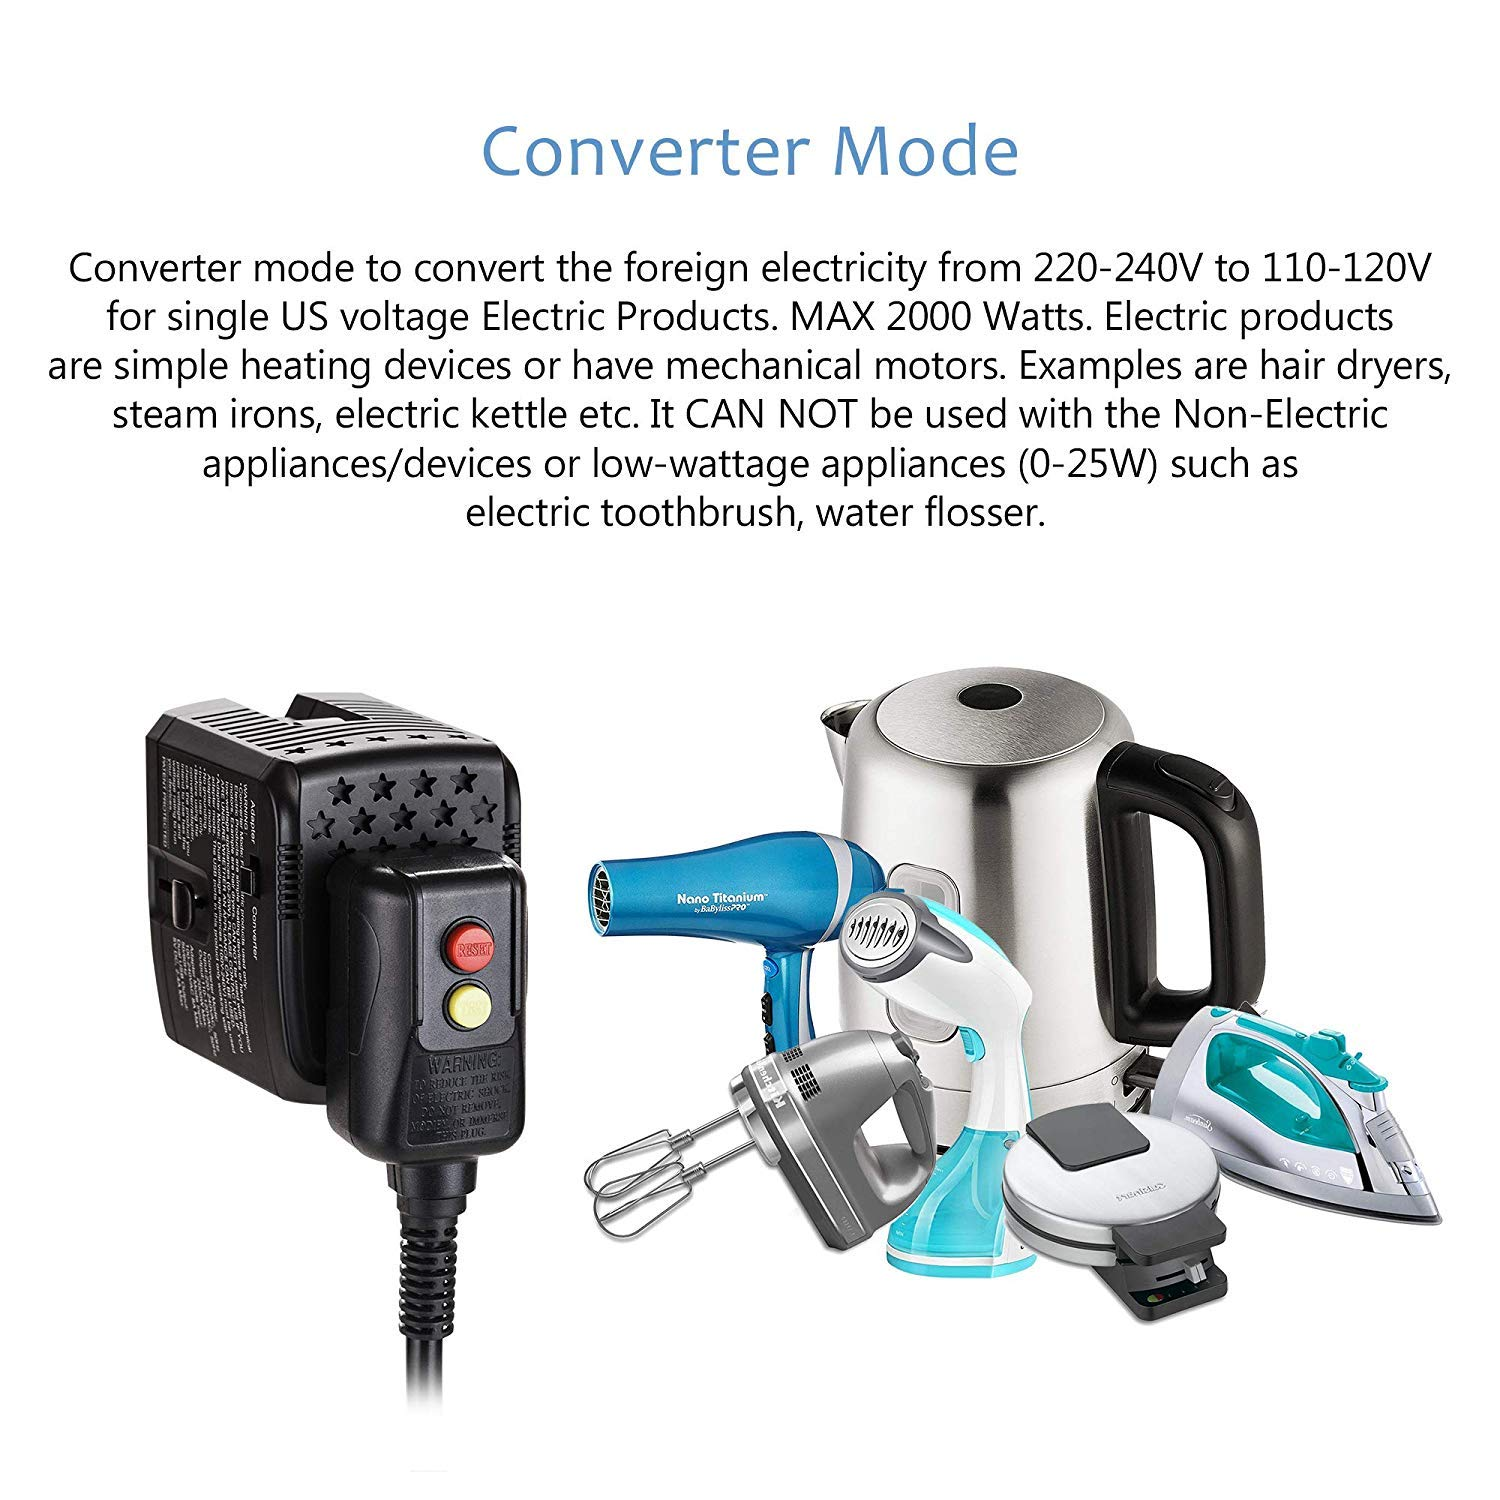 2000W 220V to 110V Power Converter Step Down Voltage for US Electric Products Like Hair Dryer, Steam Iron, Laptop - World Travel Plug Adapter w/2 USB US to Europe, UK, Italy, Asia Over 150 Countries by Bonazza (Image #2)